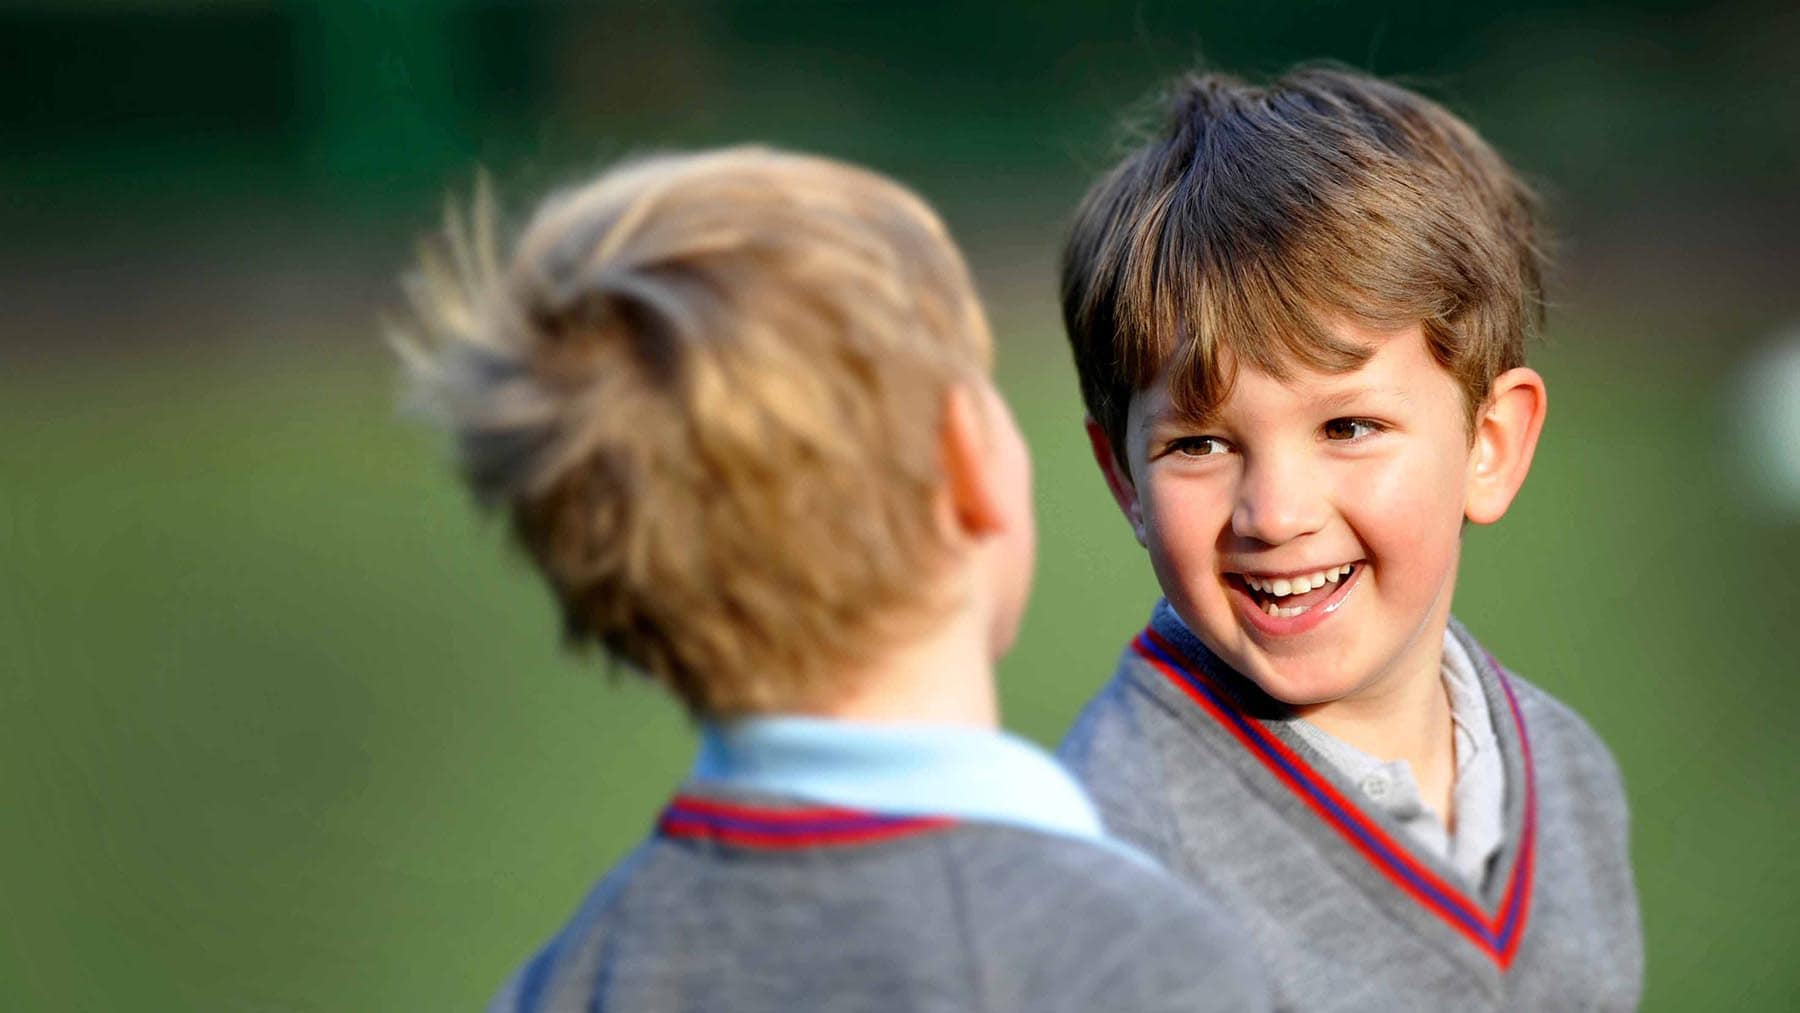 Schools photography - ©Neil Munns Photography. Rokeby School